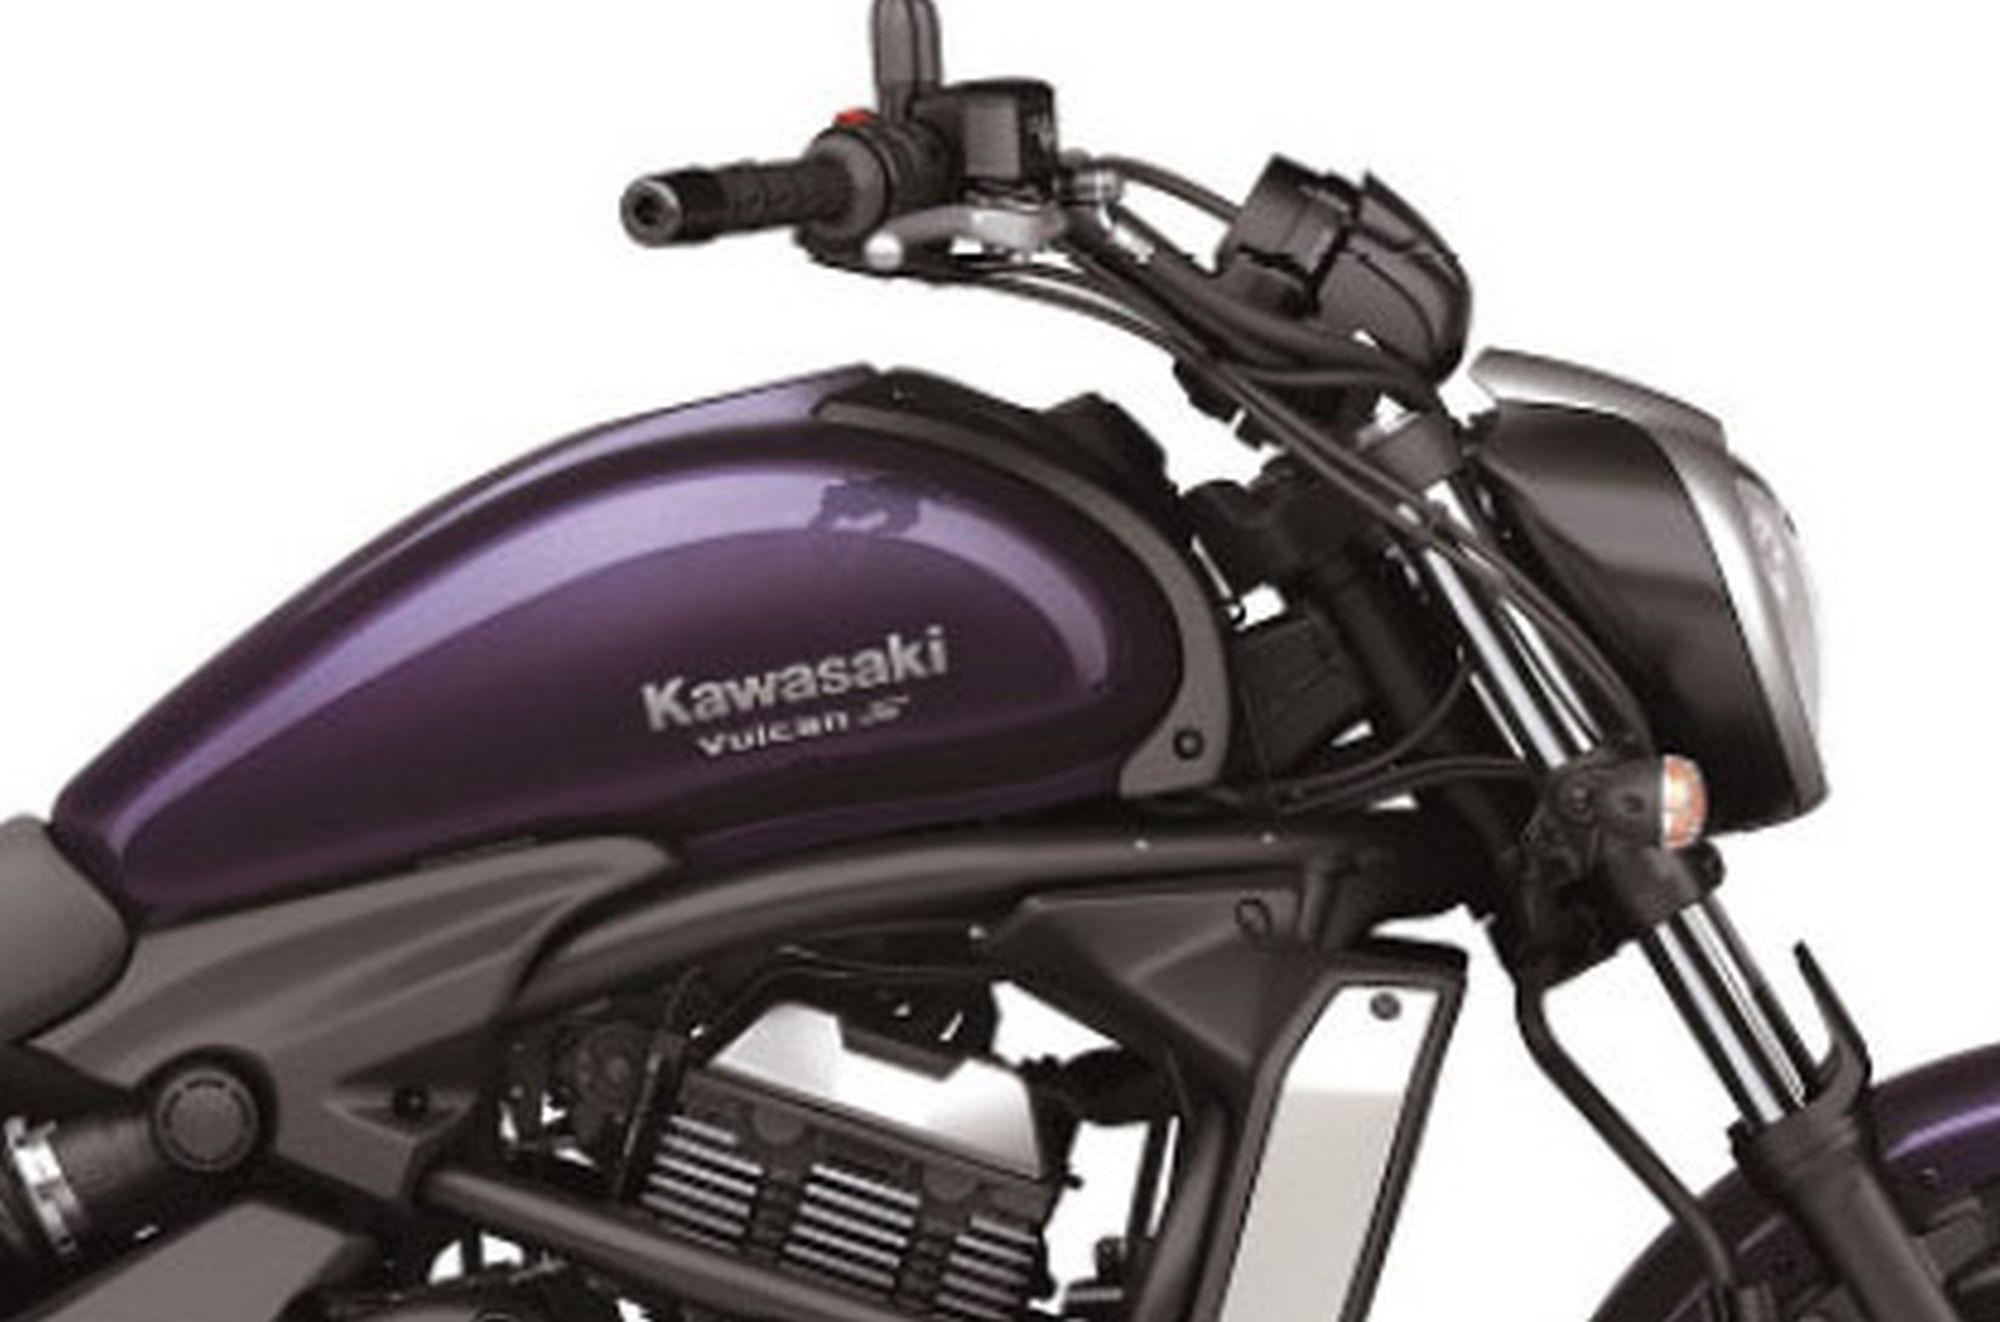 kawasaki vulcan s 2015 motorrad fotos motorrad bilder. Black Bedroom Furniture Sets. Home Design Ideas